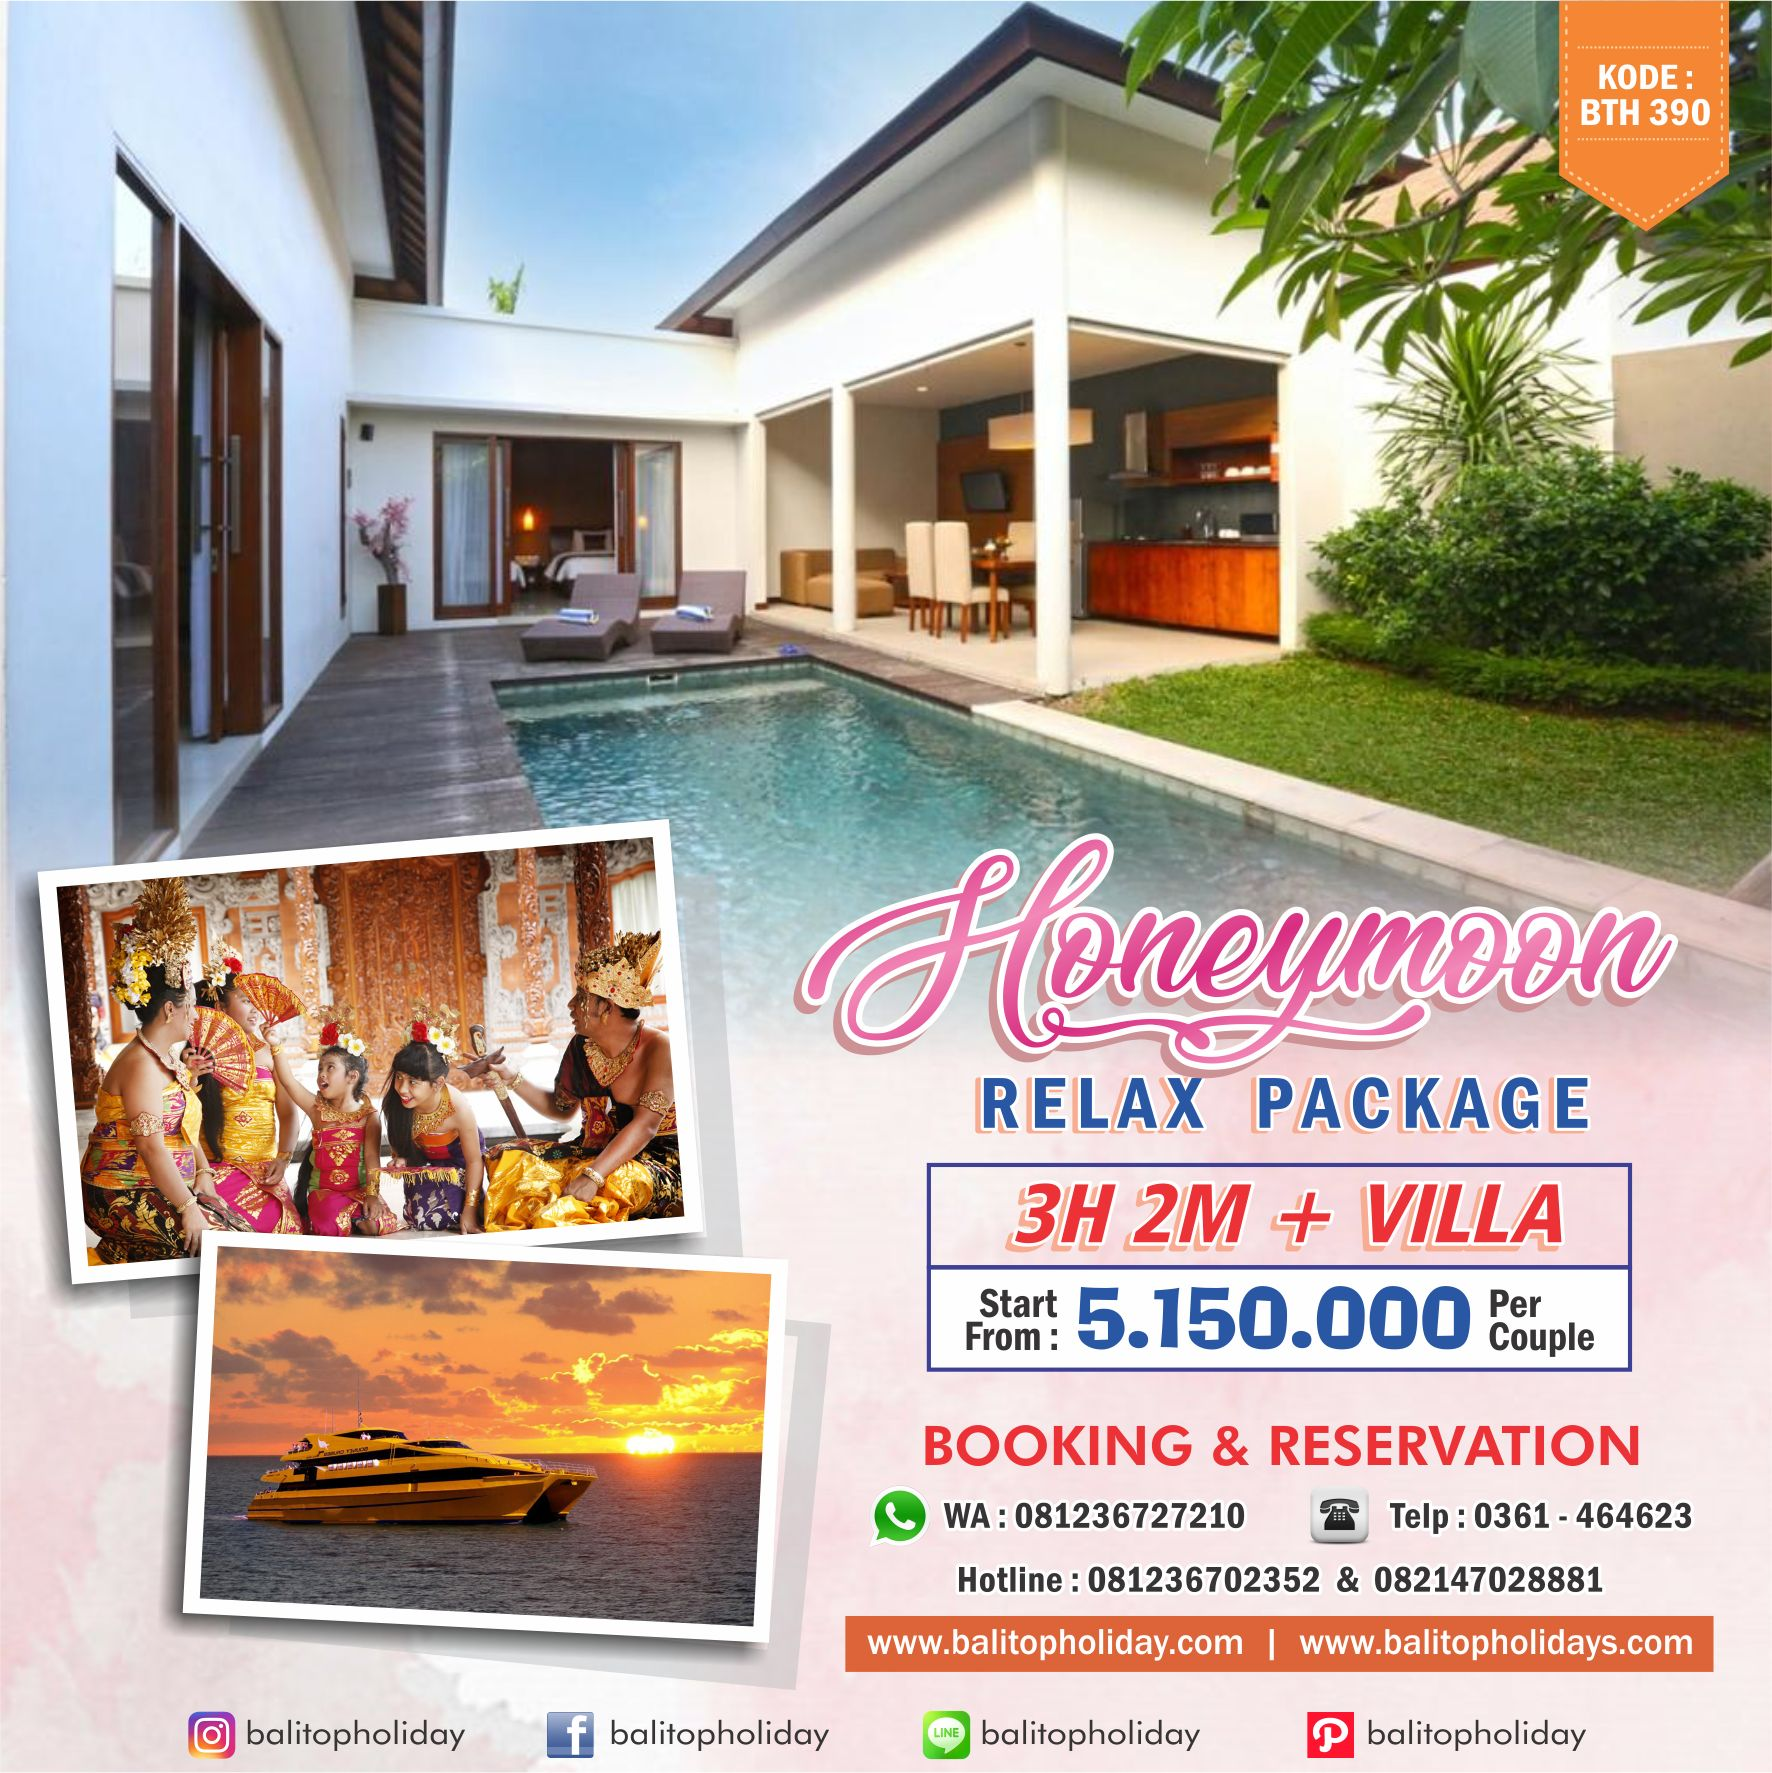 Honeymoon Relax Package BTH 390